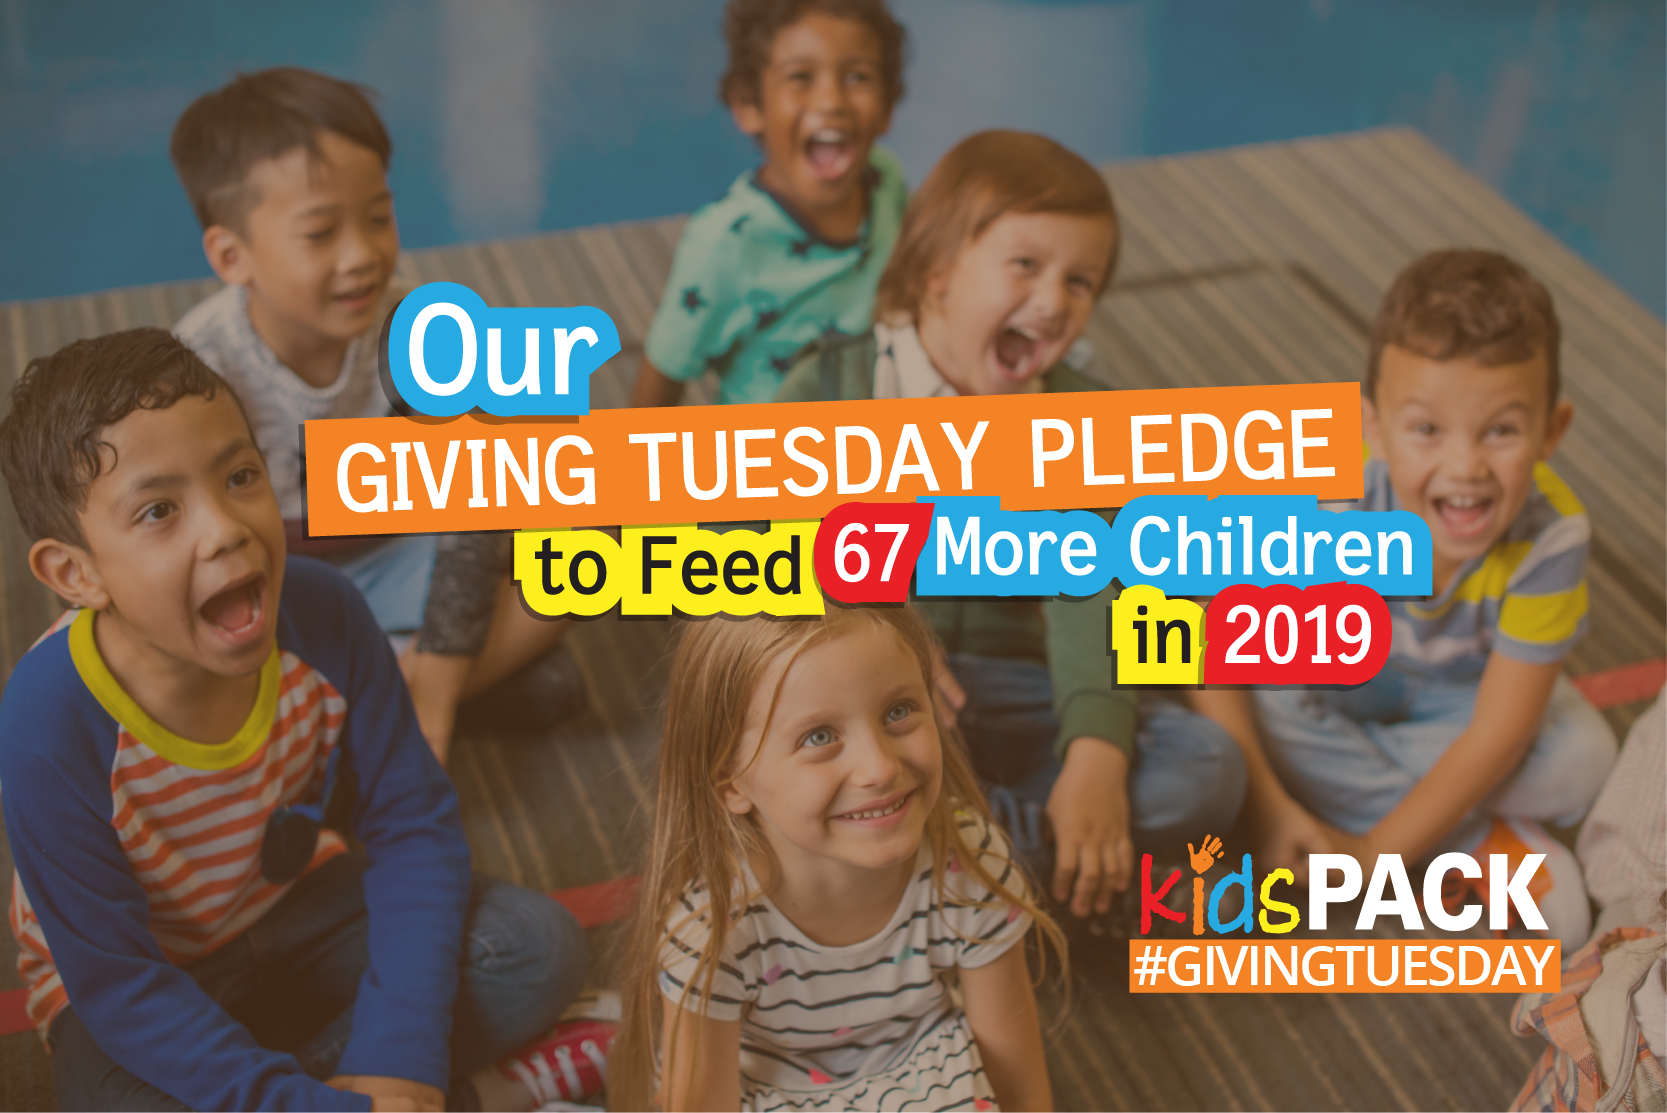 Our Giving Tuesday Pledge to Feed 67 More Children in 2019